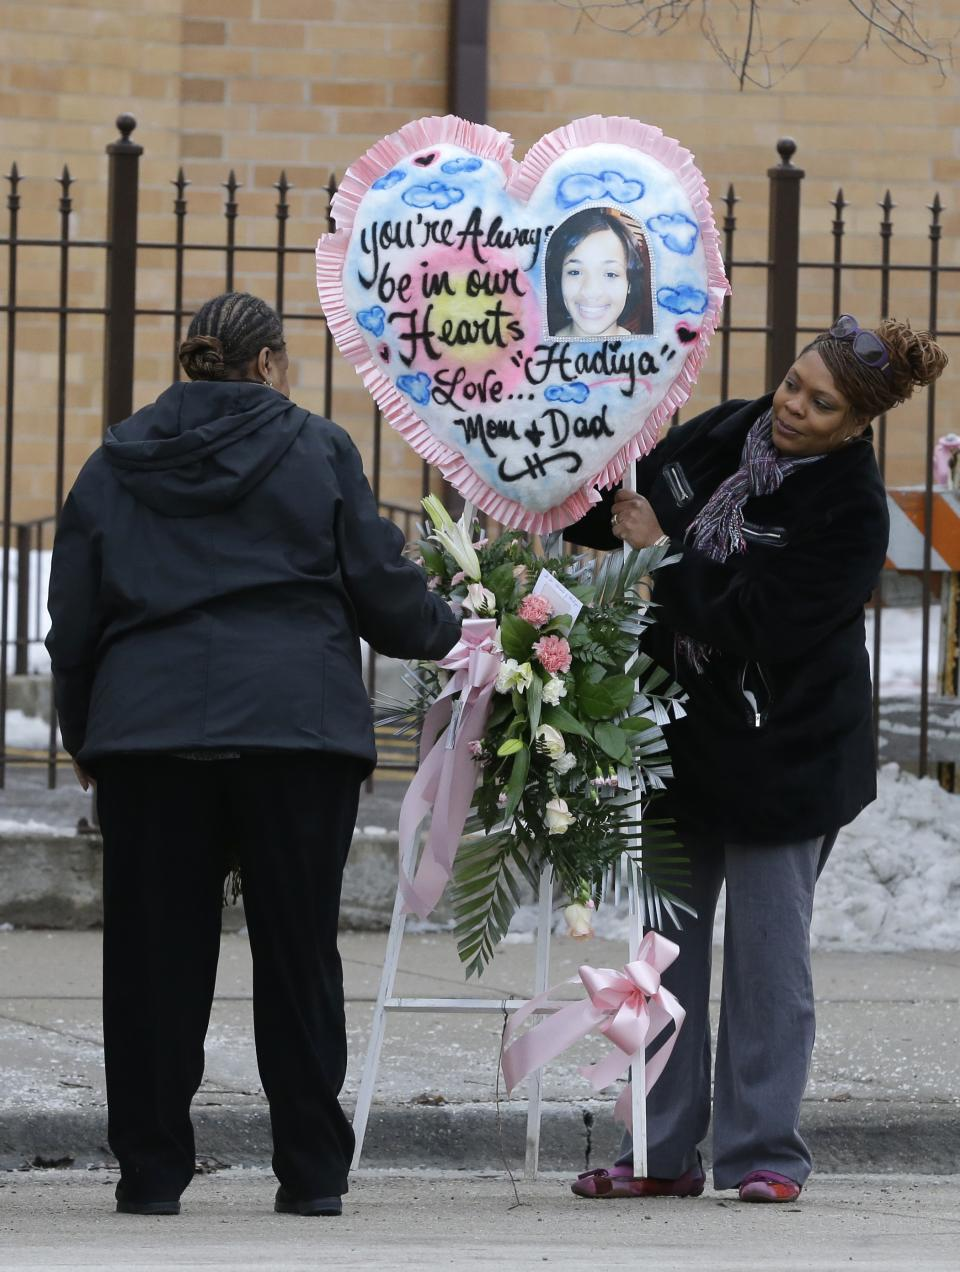 A floral arrangement is delivered at the Greater Harvest Missionary Baptist Church for the funeral service of Hadiya Pendleton Saturday, Feb. 9, 2013, in Chicago. The shooting death of the 15-year-old honor student has drawn attention to the staggering gun violence in the nation's third-largest city. (AP Photo/Nam Y. Huh)